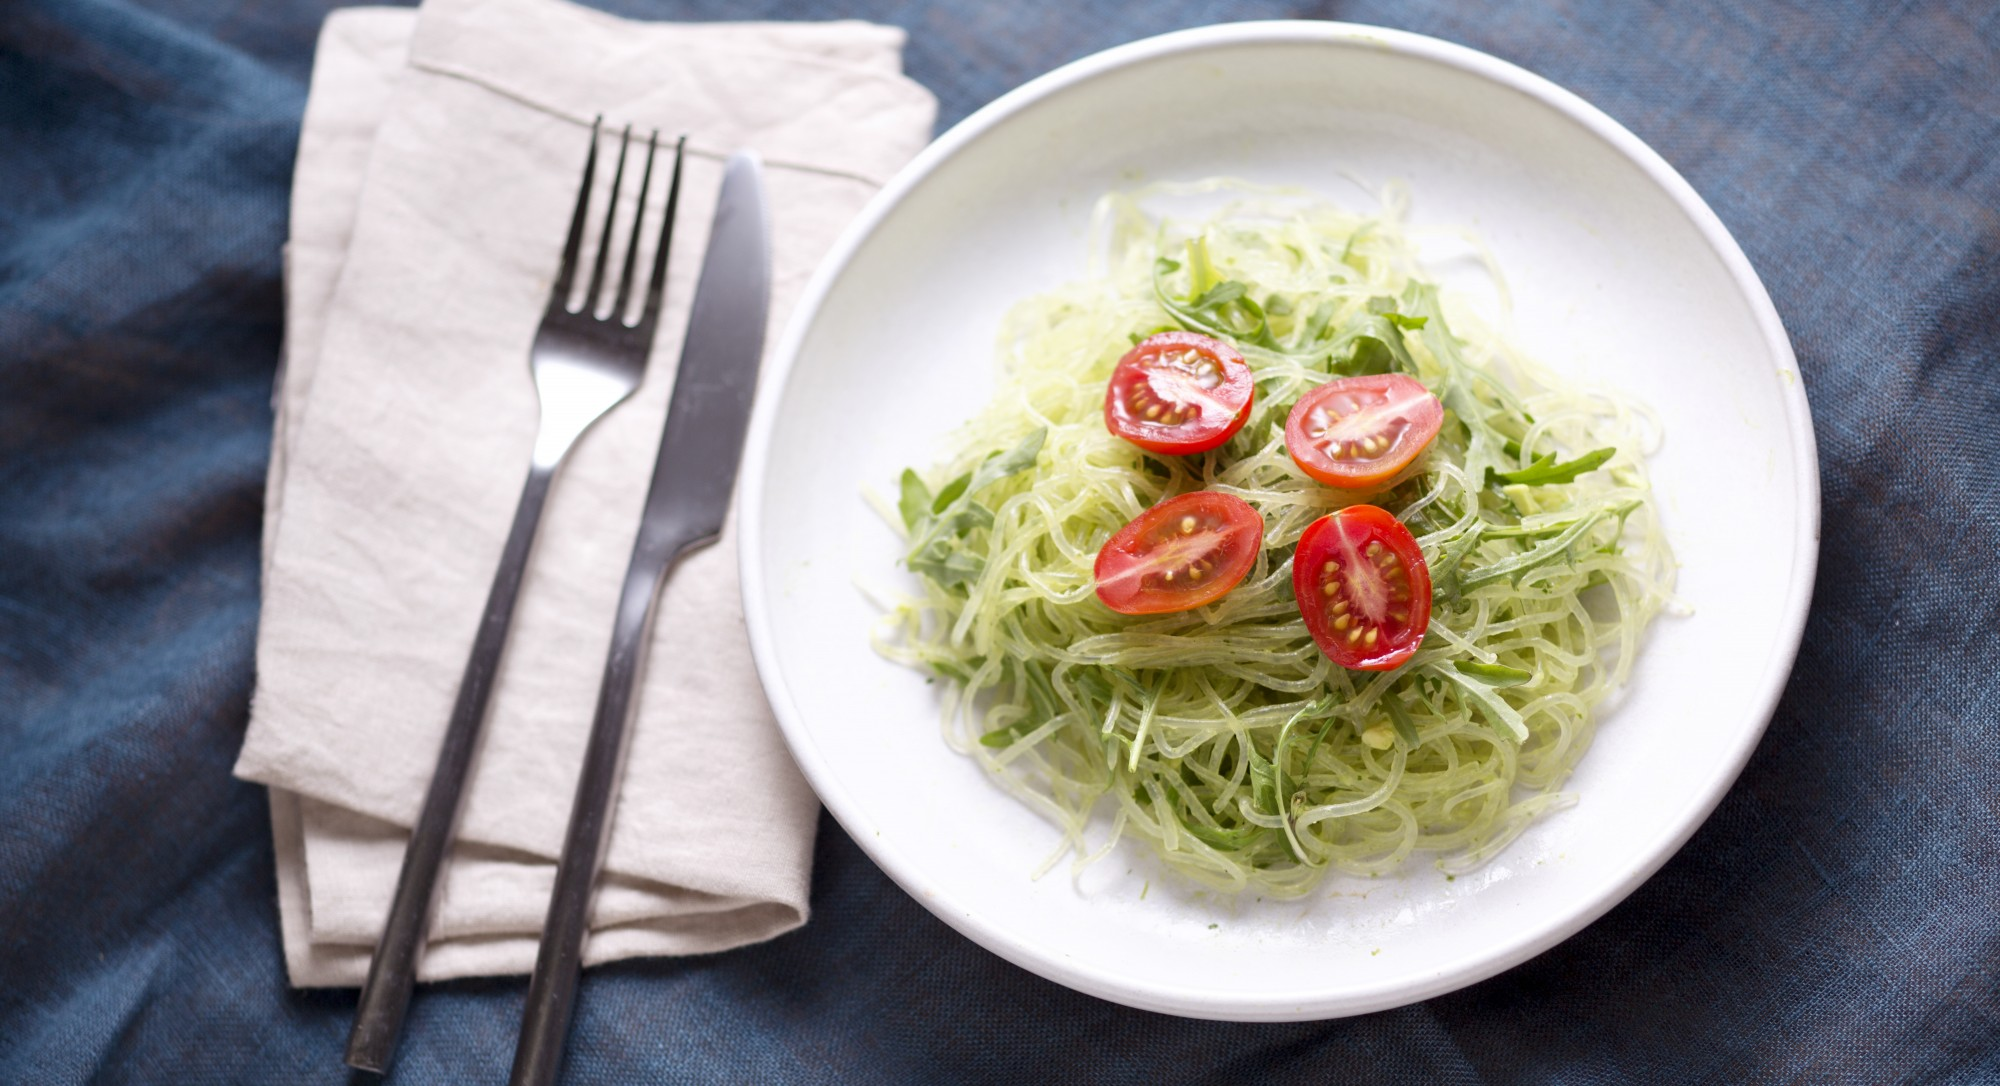 Who Needs Pasta With a Kelp Noodle Dish This Good?